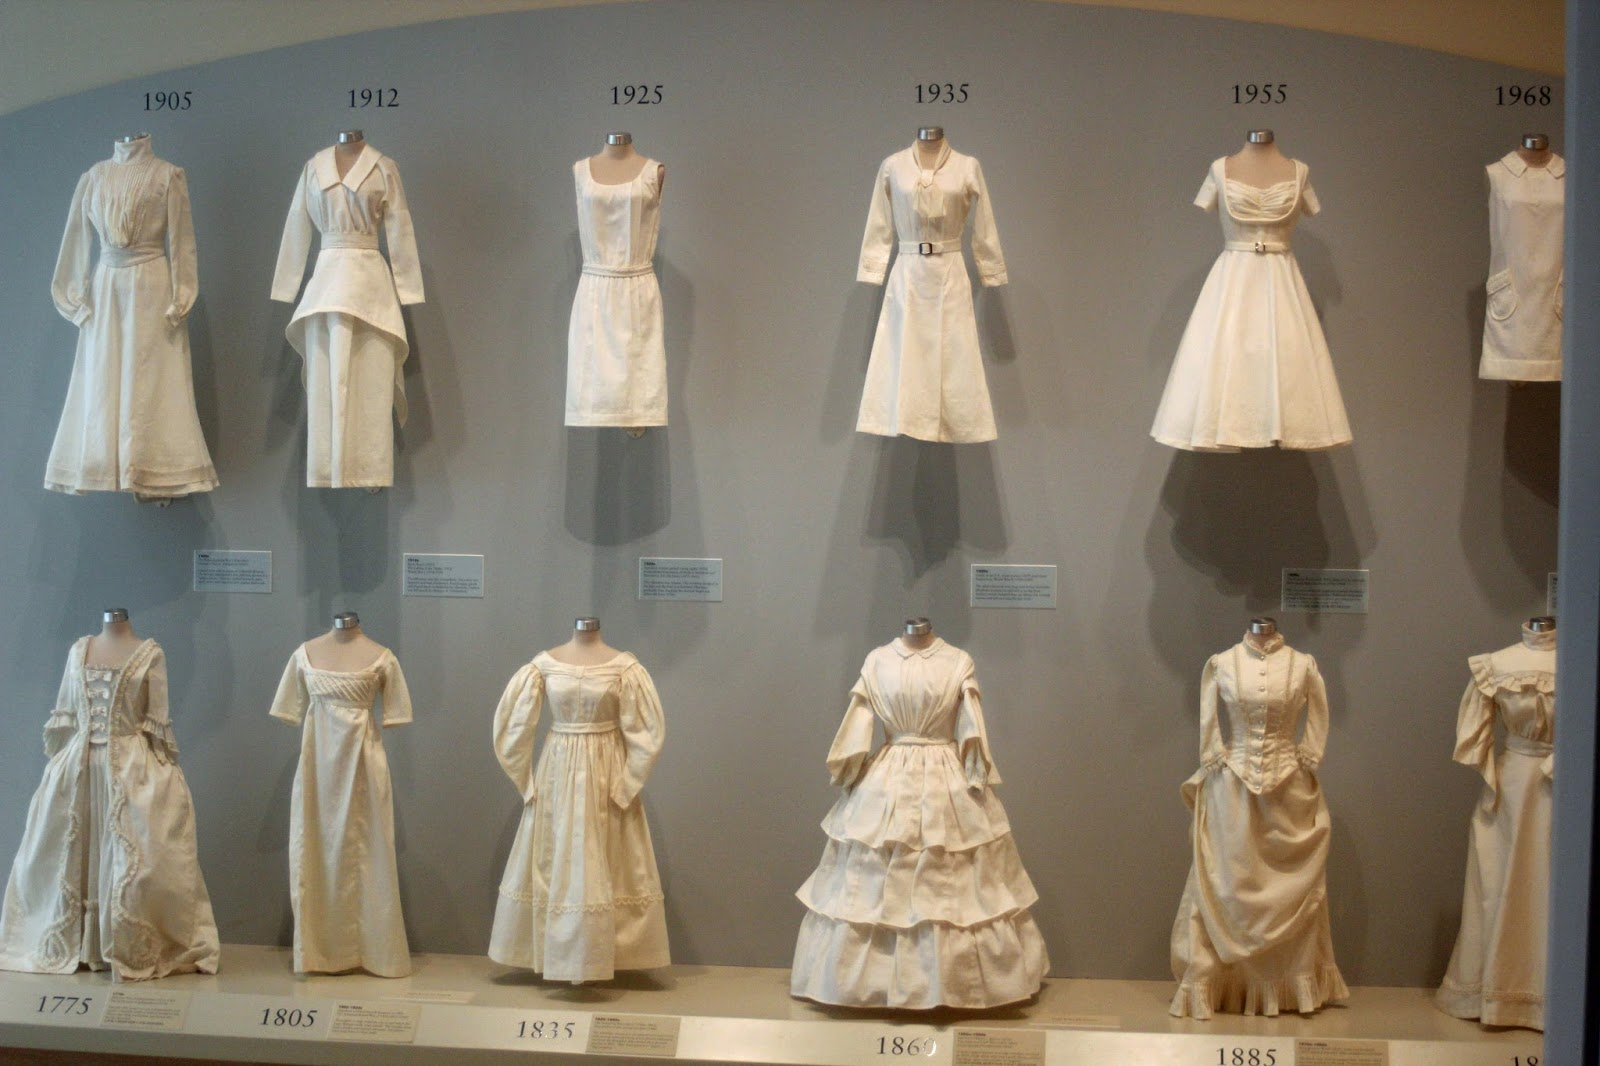 Women s Fashion History Outlined in Illustrated Timeline from 1784 80